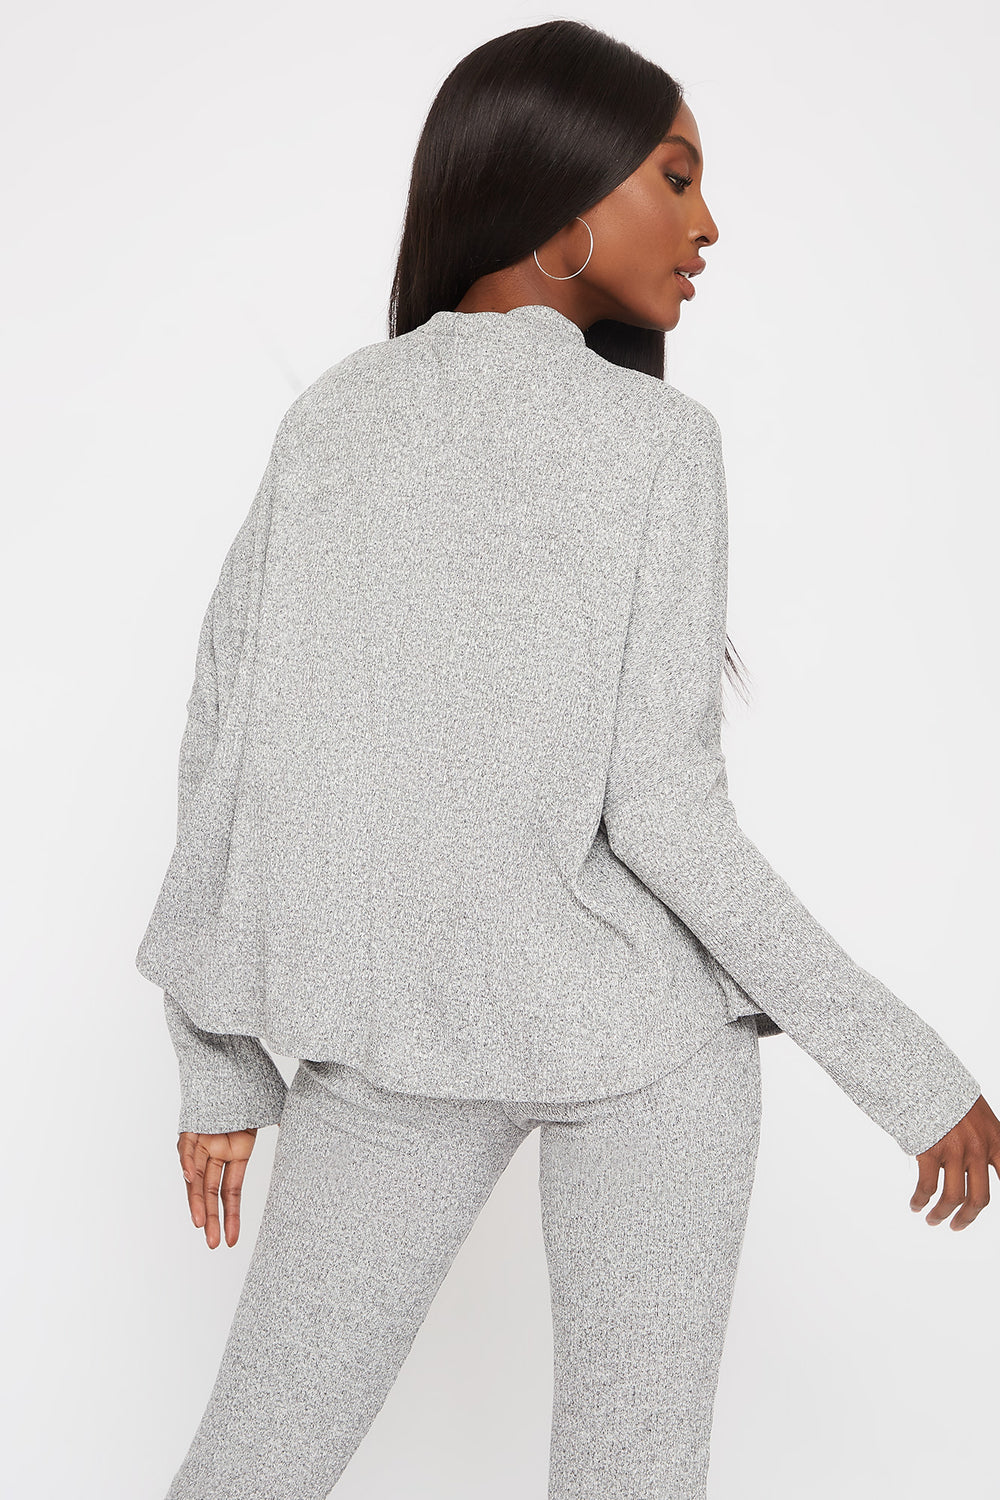 Ribbed Mock Neck Dolman Long Sleeve Heather Grey